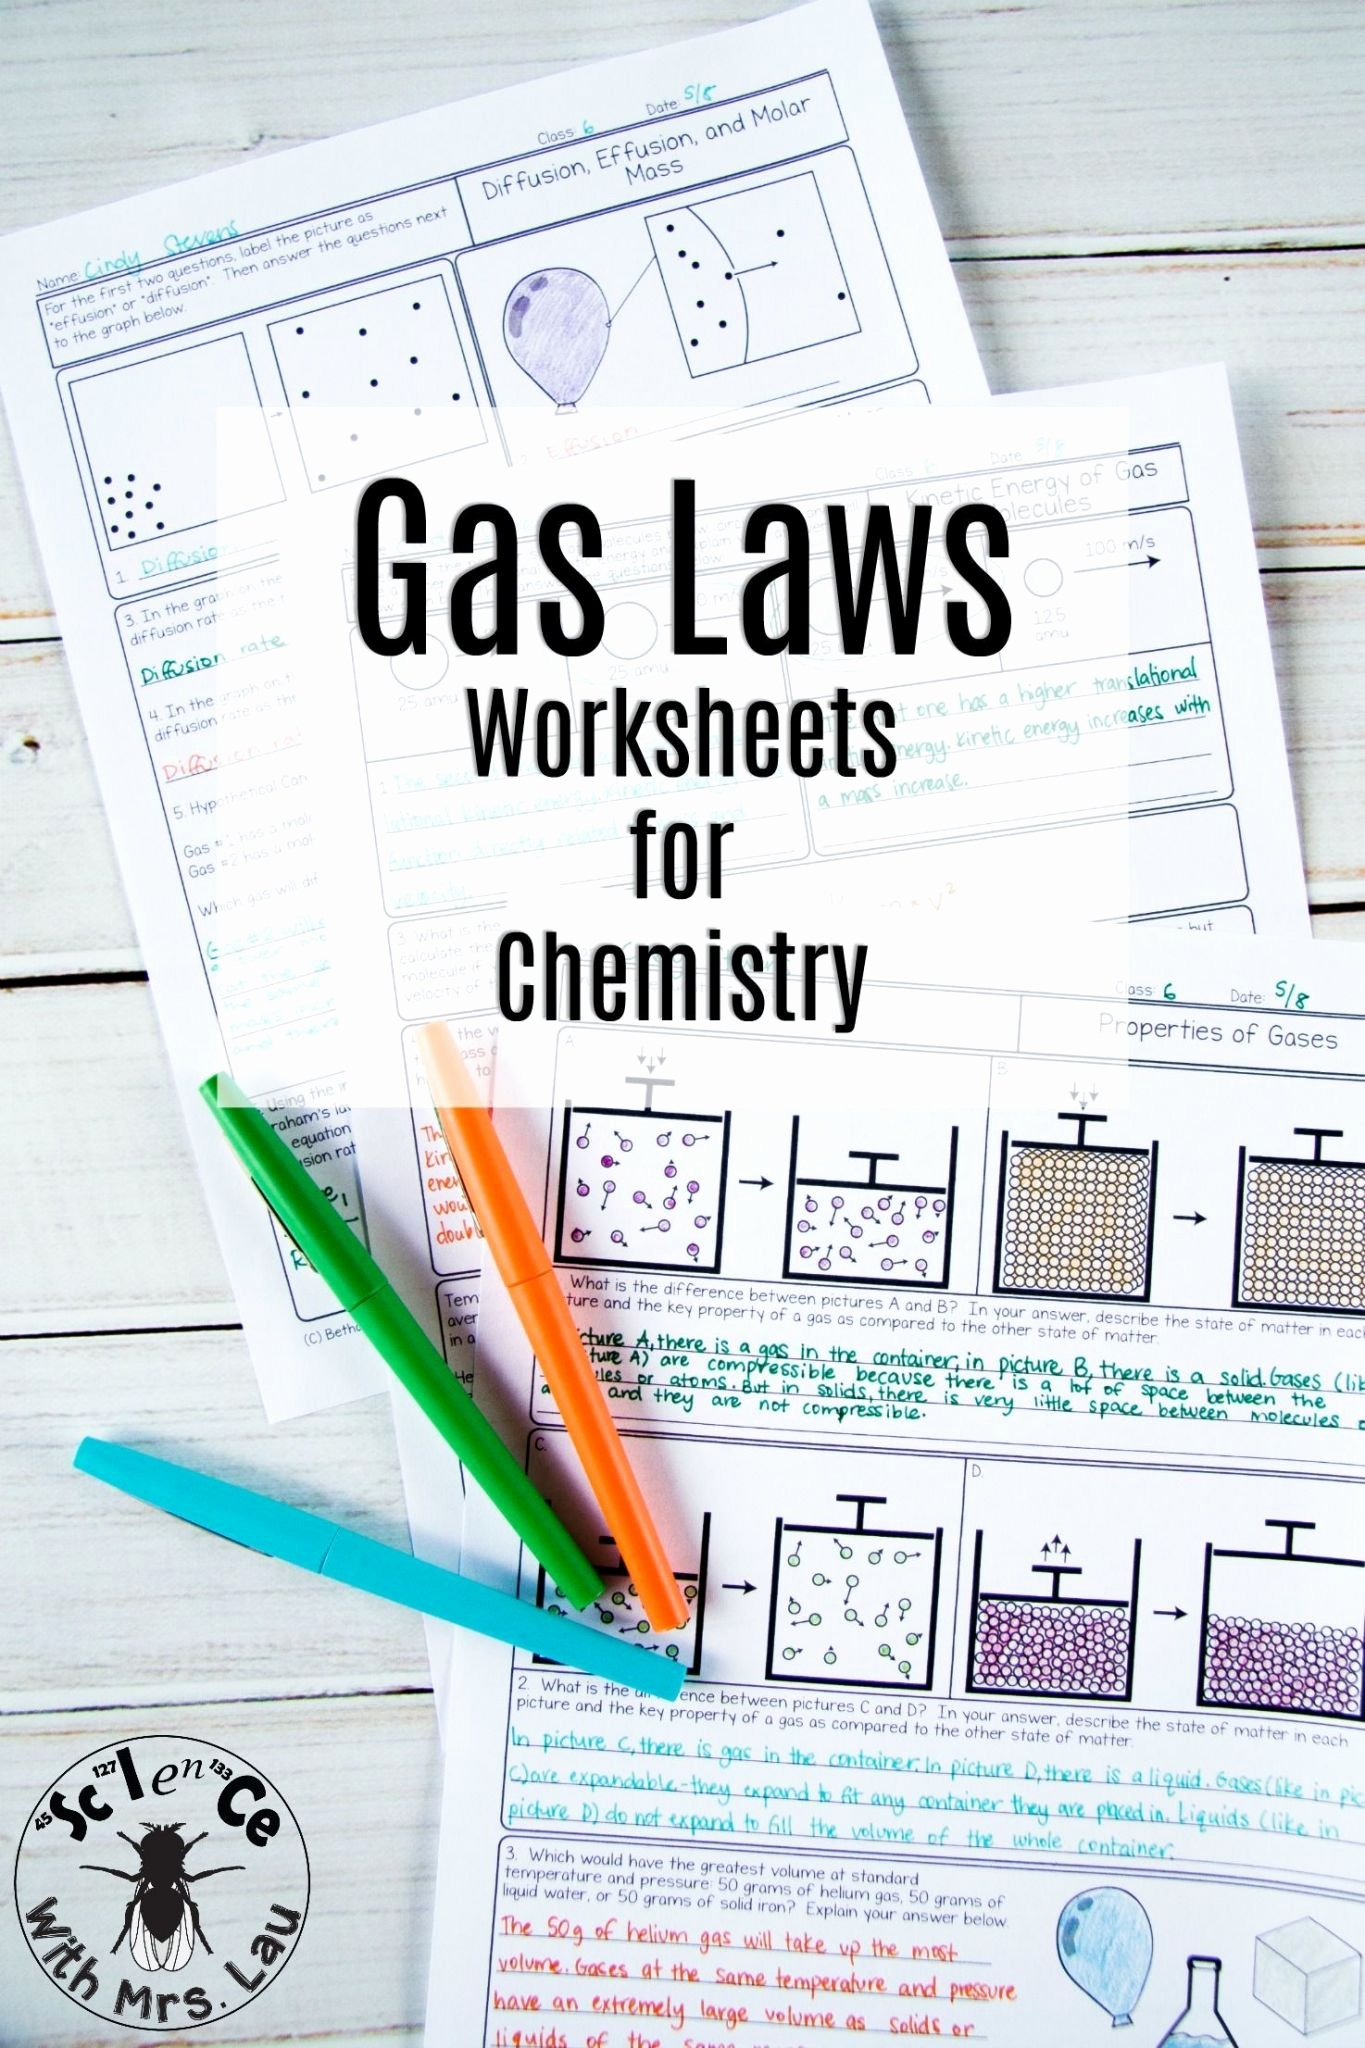 Naming Binary Ionic Compounds Worksheet Best Of formulas and Nomenclature Binary Ionic Pounds Worksheet